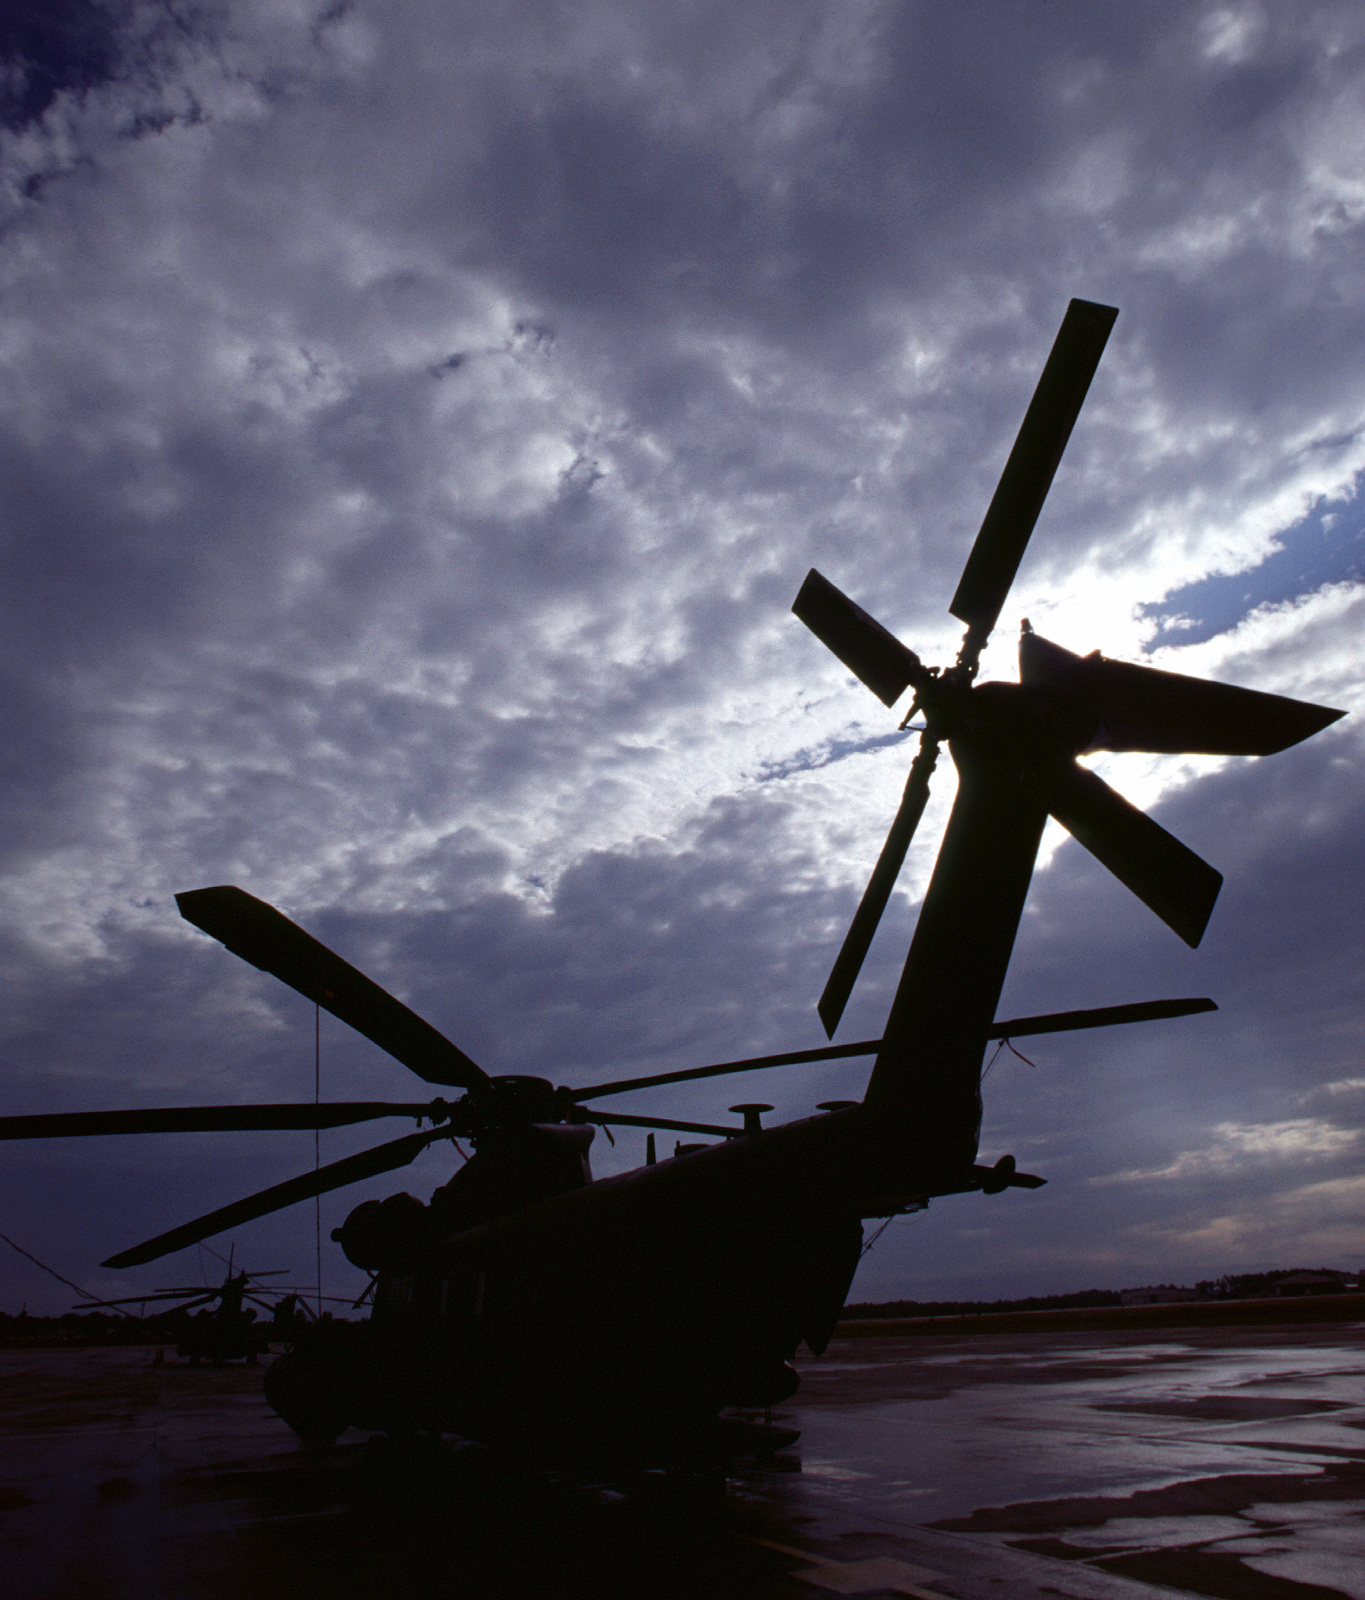 A stern portside view of an USAF MH-53J Enhanced Pave Low